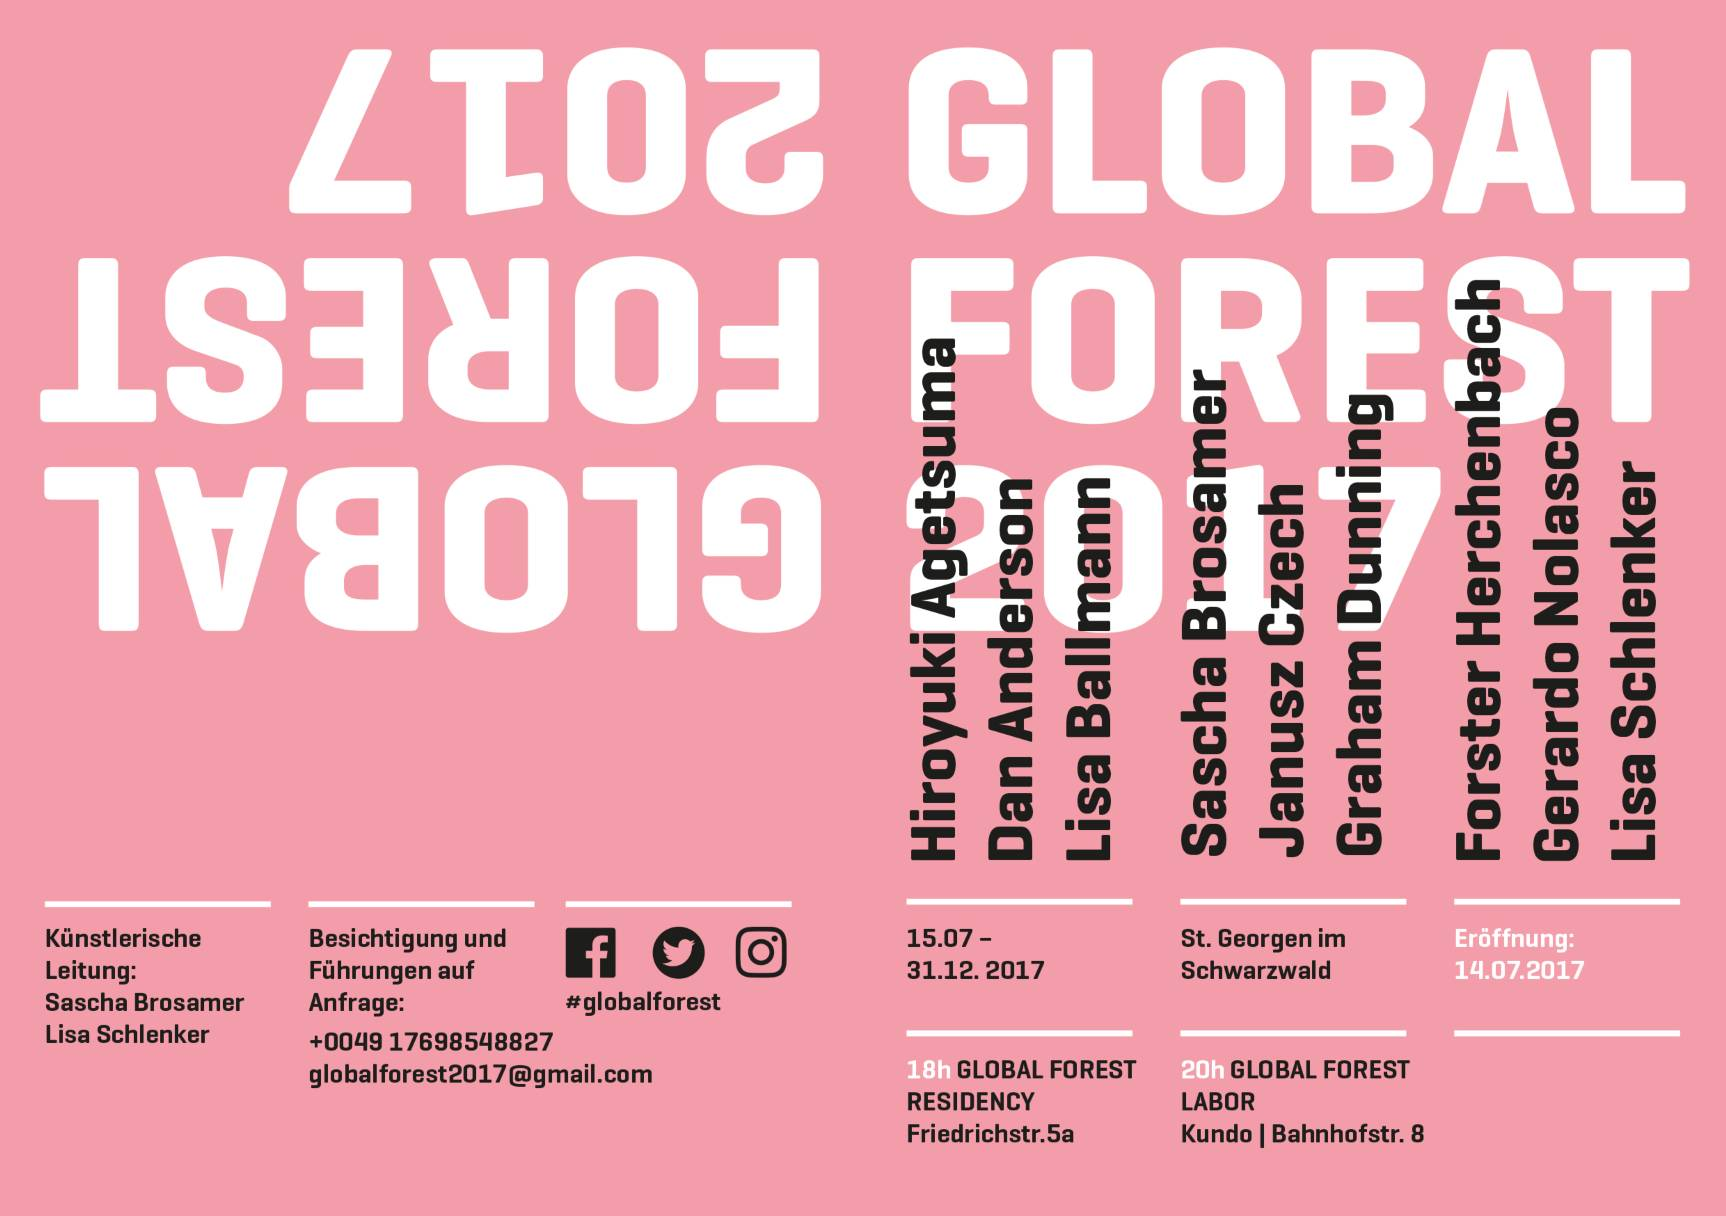 Global Forest 1